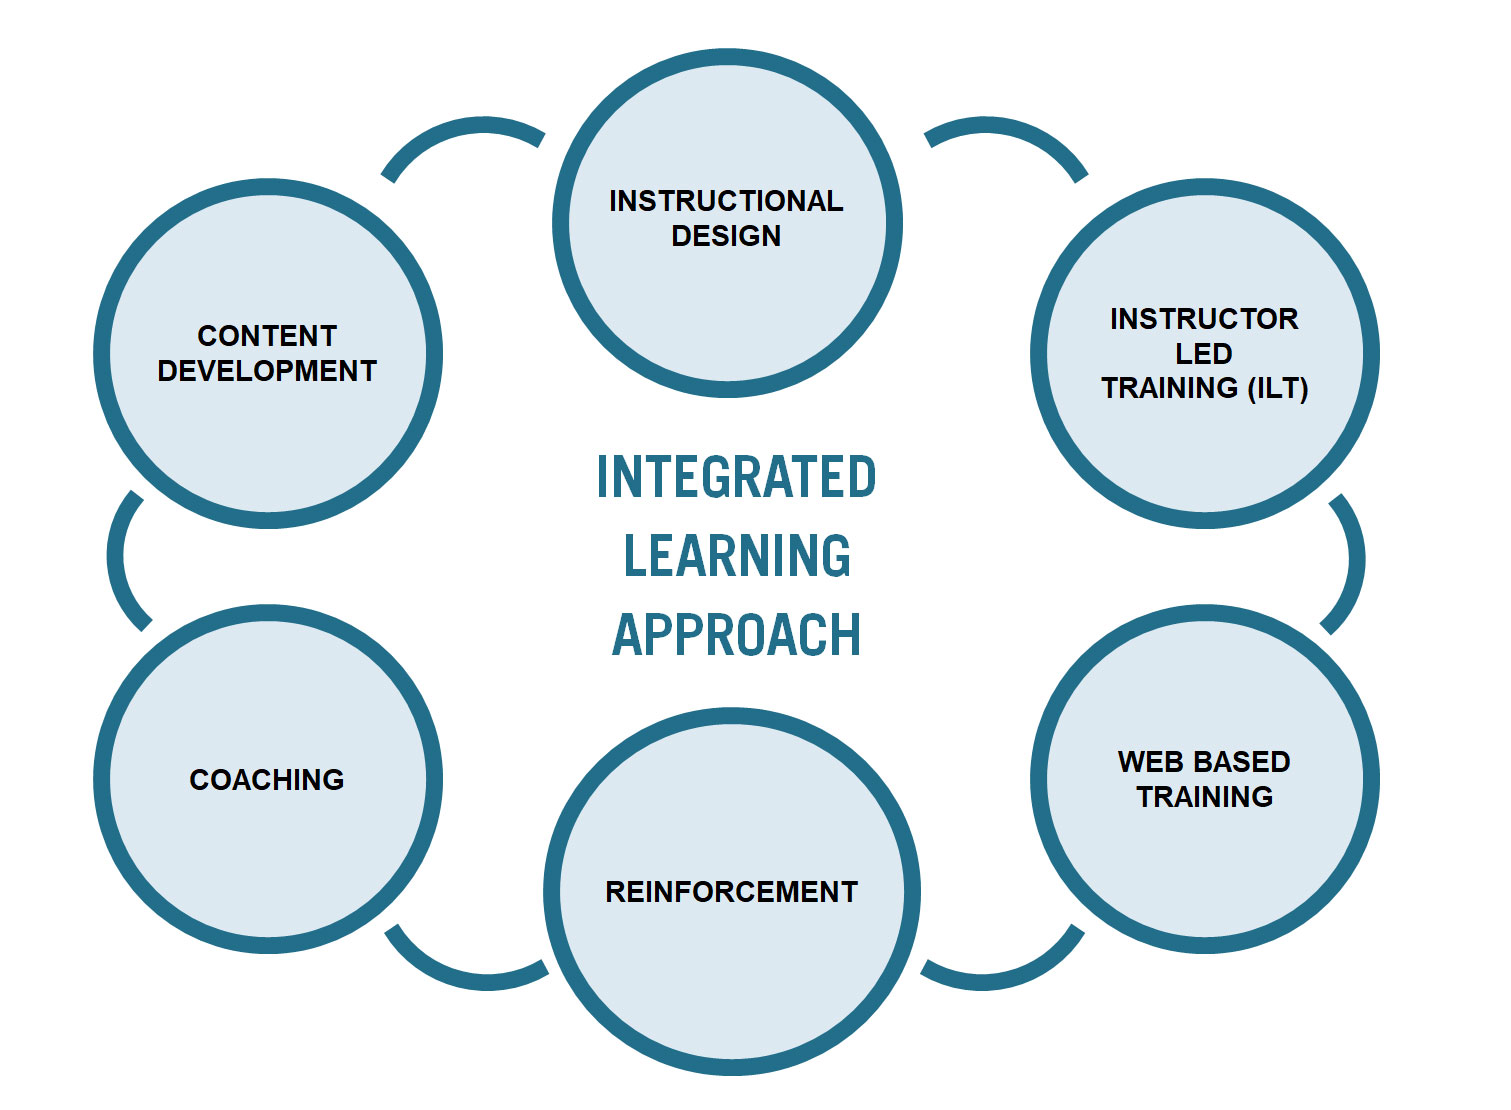 Integrated Learning Approach